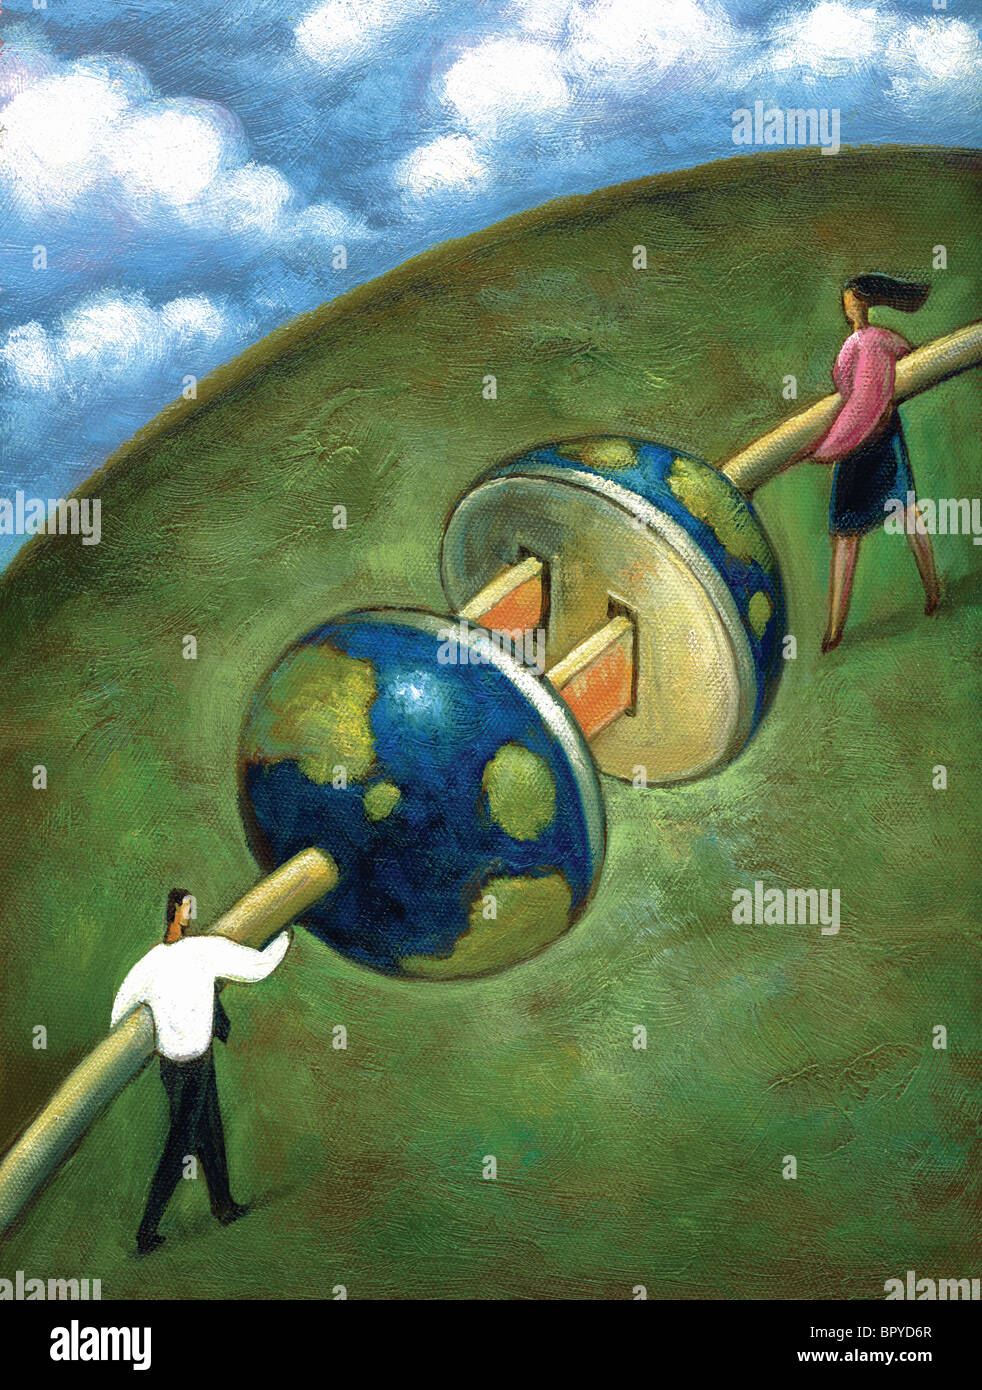 Two business people plugging giant cords together that fit into the shape of earth - Stock Image